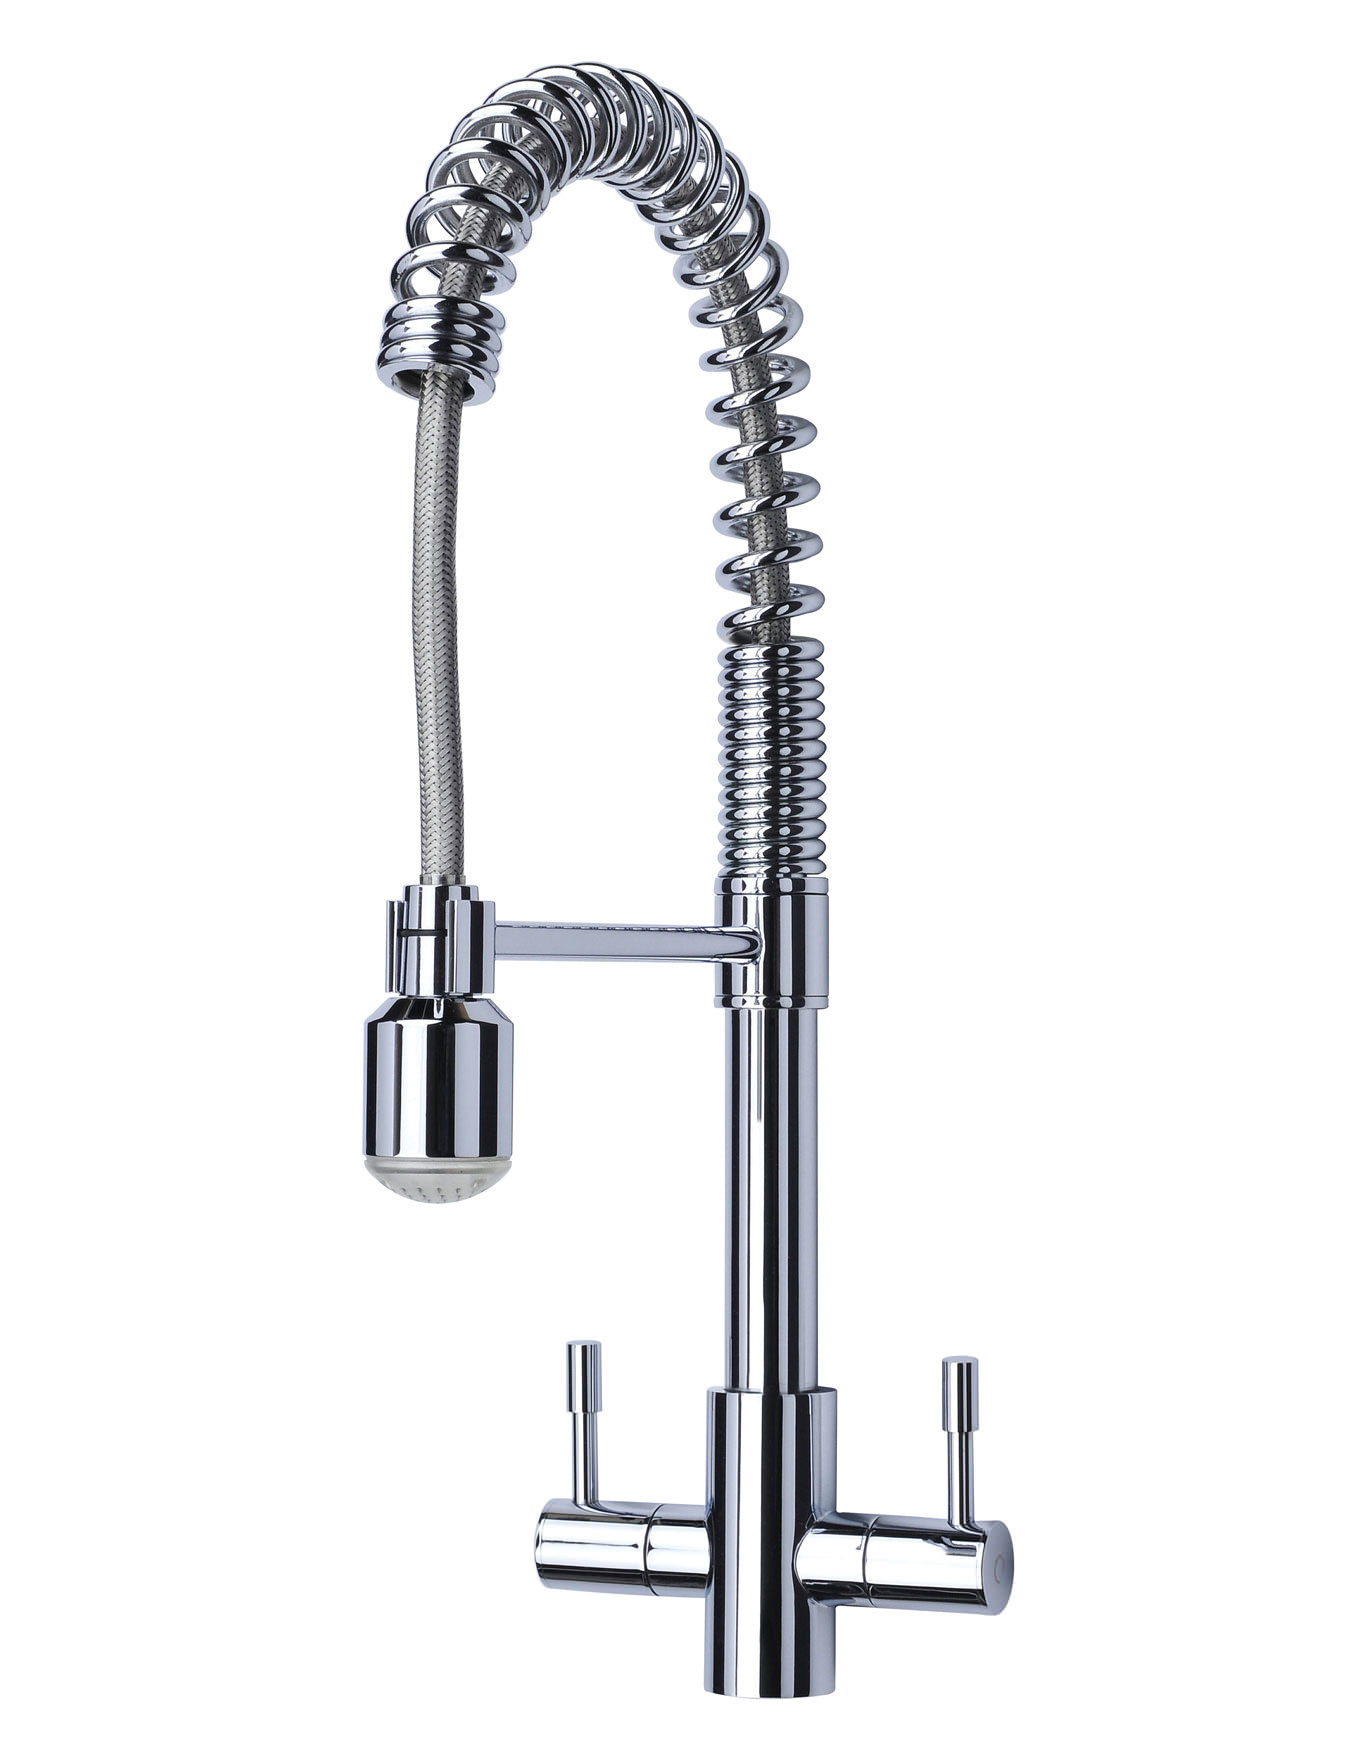 Mixer Taps For Kitchen Sink Mayfair groove kitchen sink mixer tap chrome kit173 workwithnaturefo